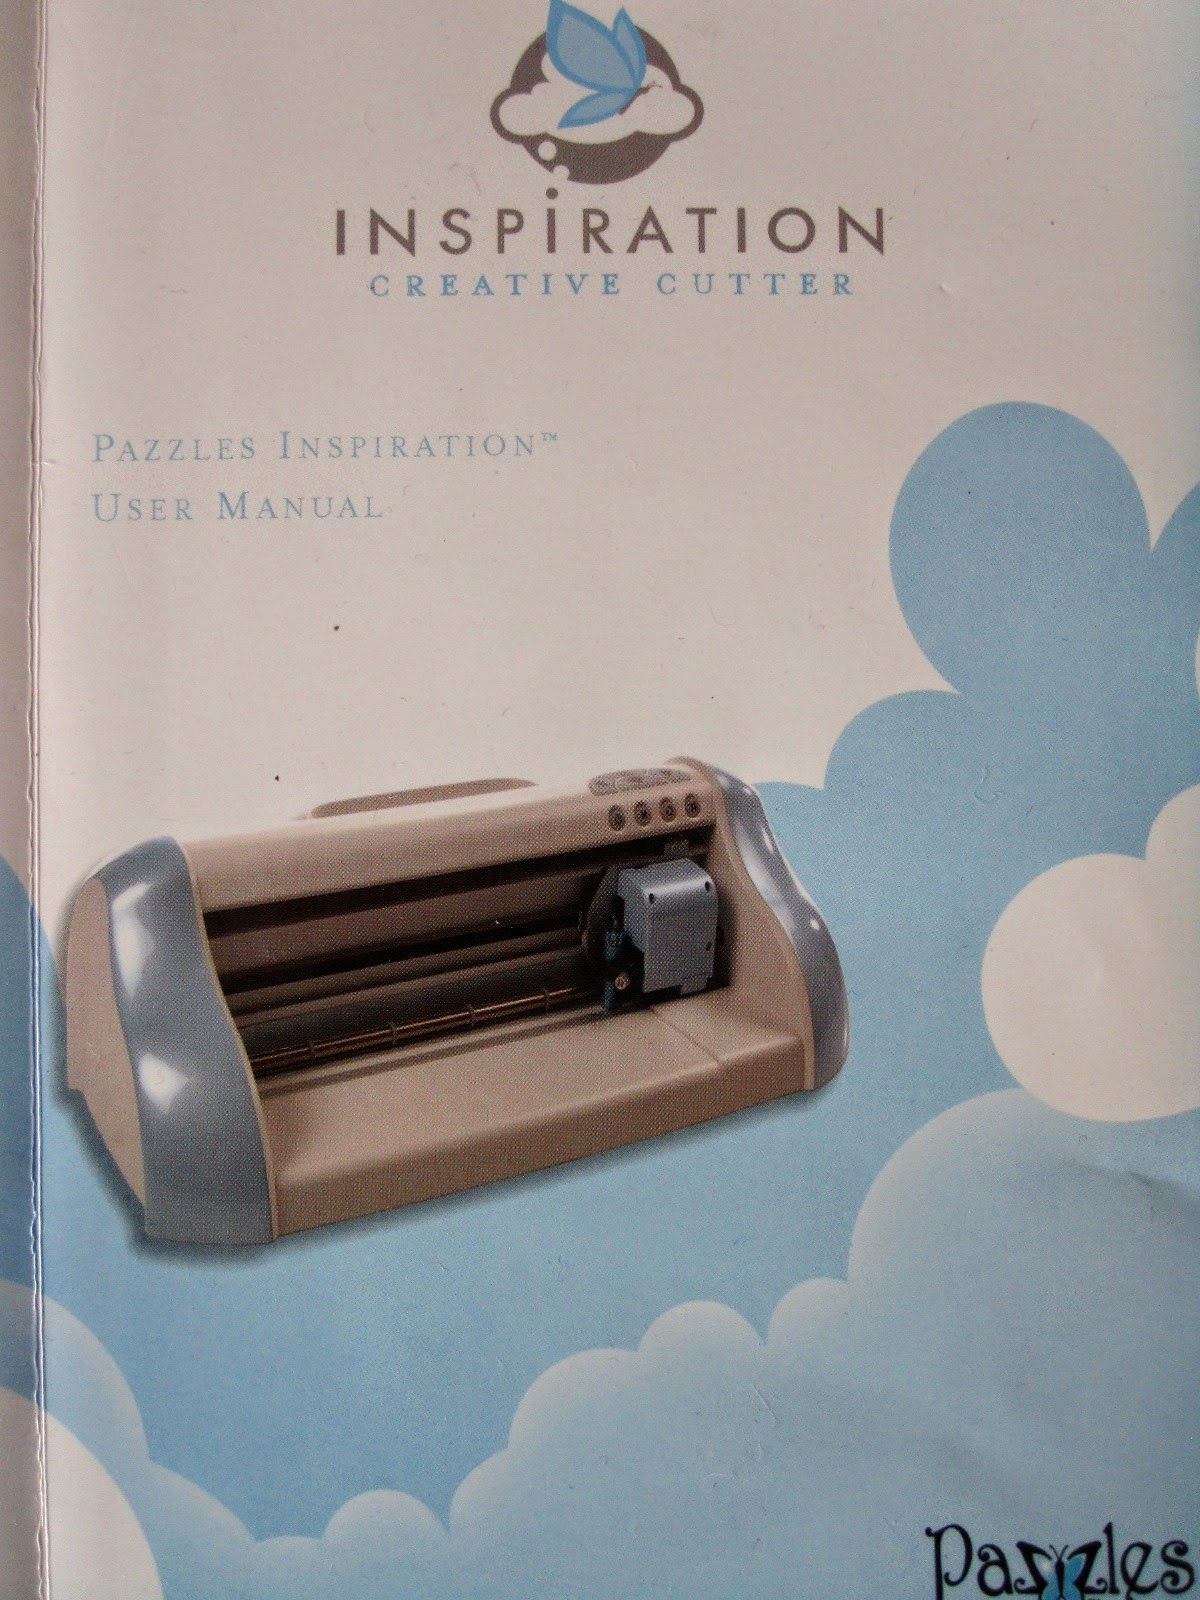 Instruction manual for the Inspiration creative cutter machine.